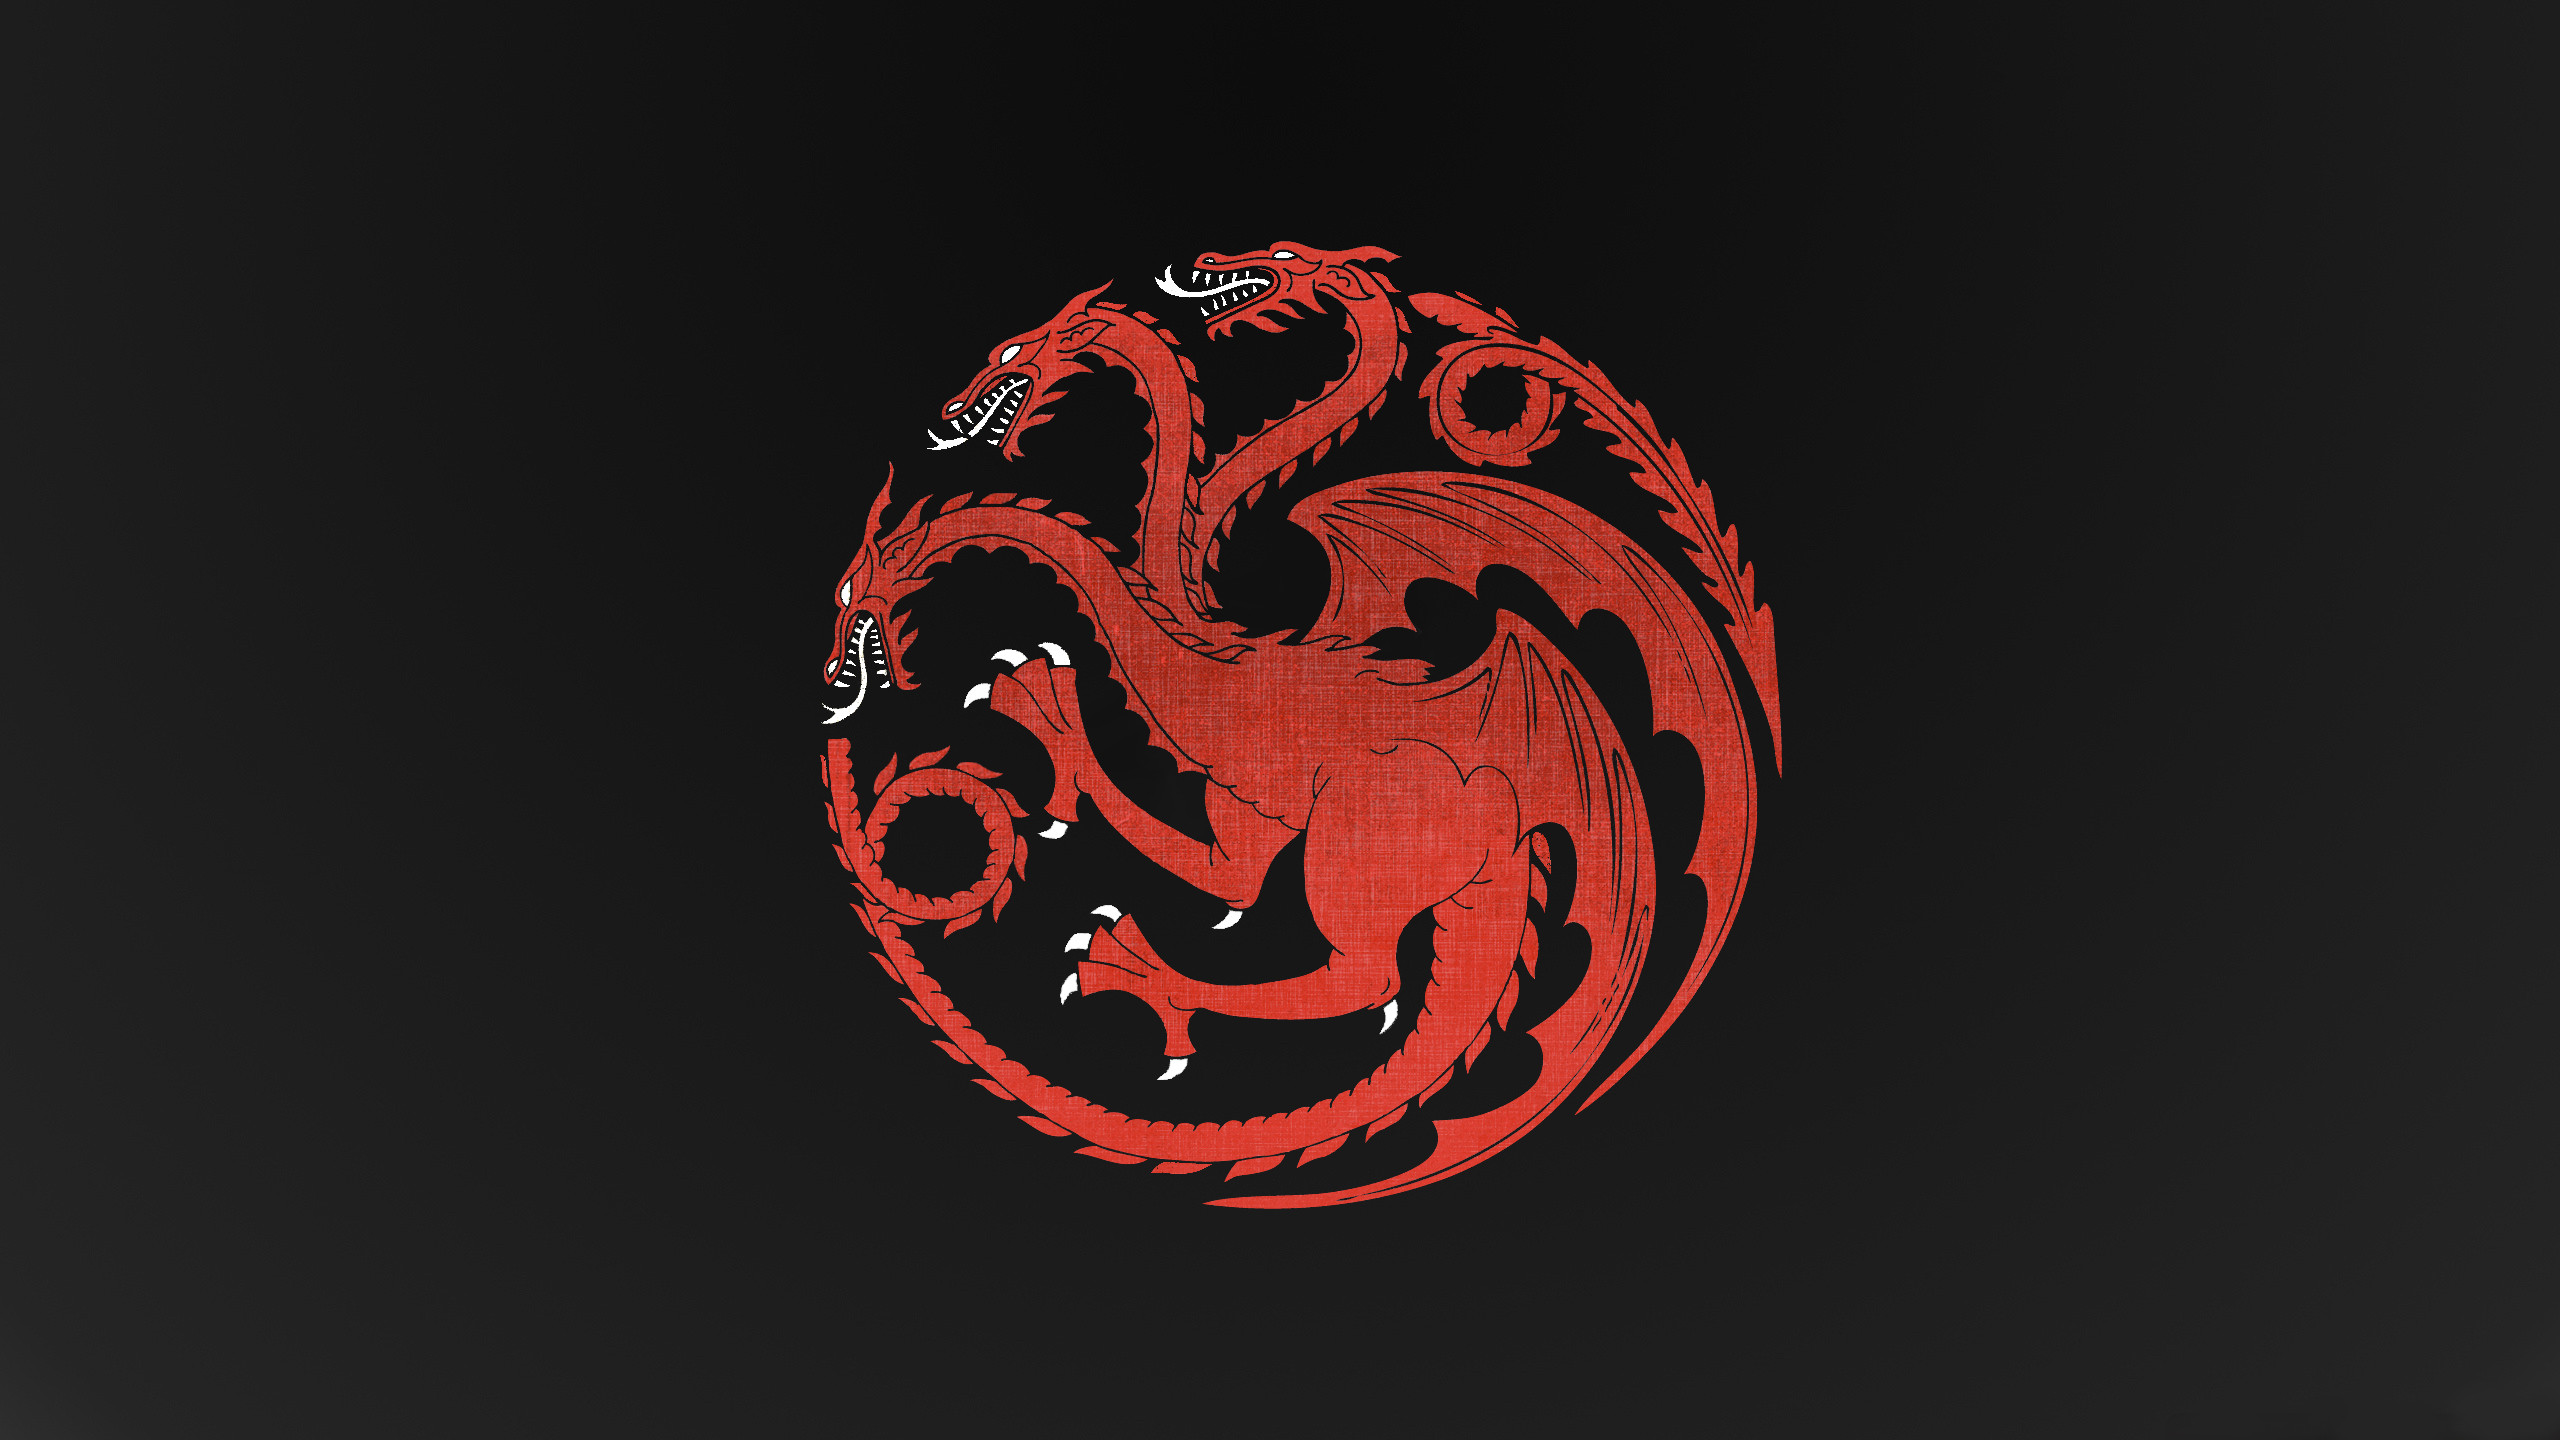 House Targaryen Dragon Game Of Thrones Dragon Minimalism Hd